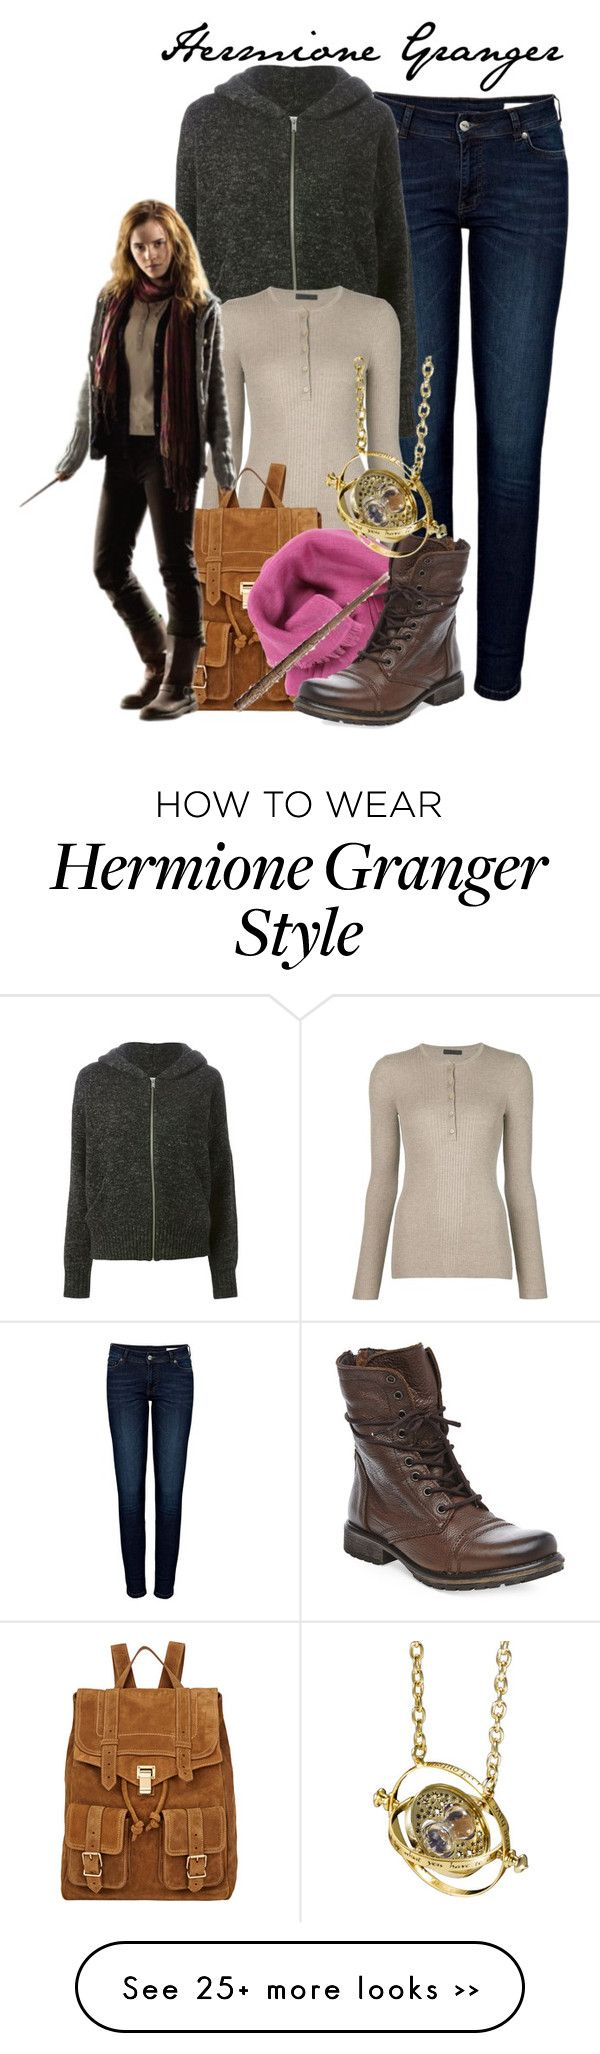 """Hermione Granger - Arwen"" by the-fandom-gals on Polyvore featuring Anine Bing, Étoile Isabel Marant, ATM by Anthony Thomas Melillo, Proenza Schouler, Bajra, Steve Madden and QueenofGondor"